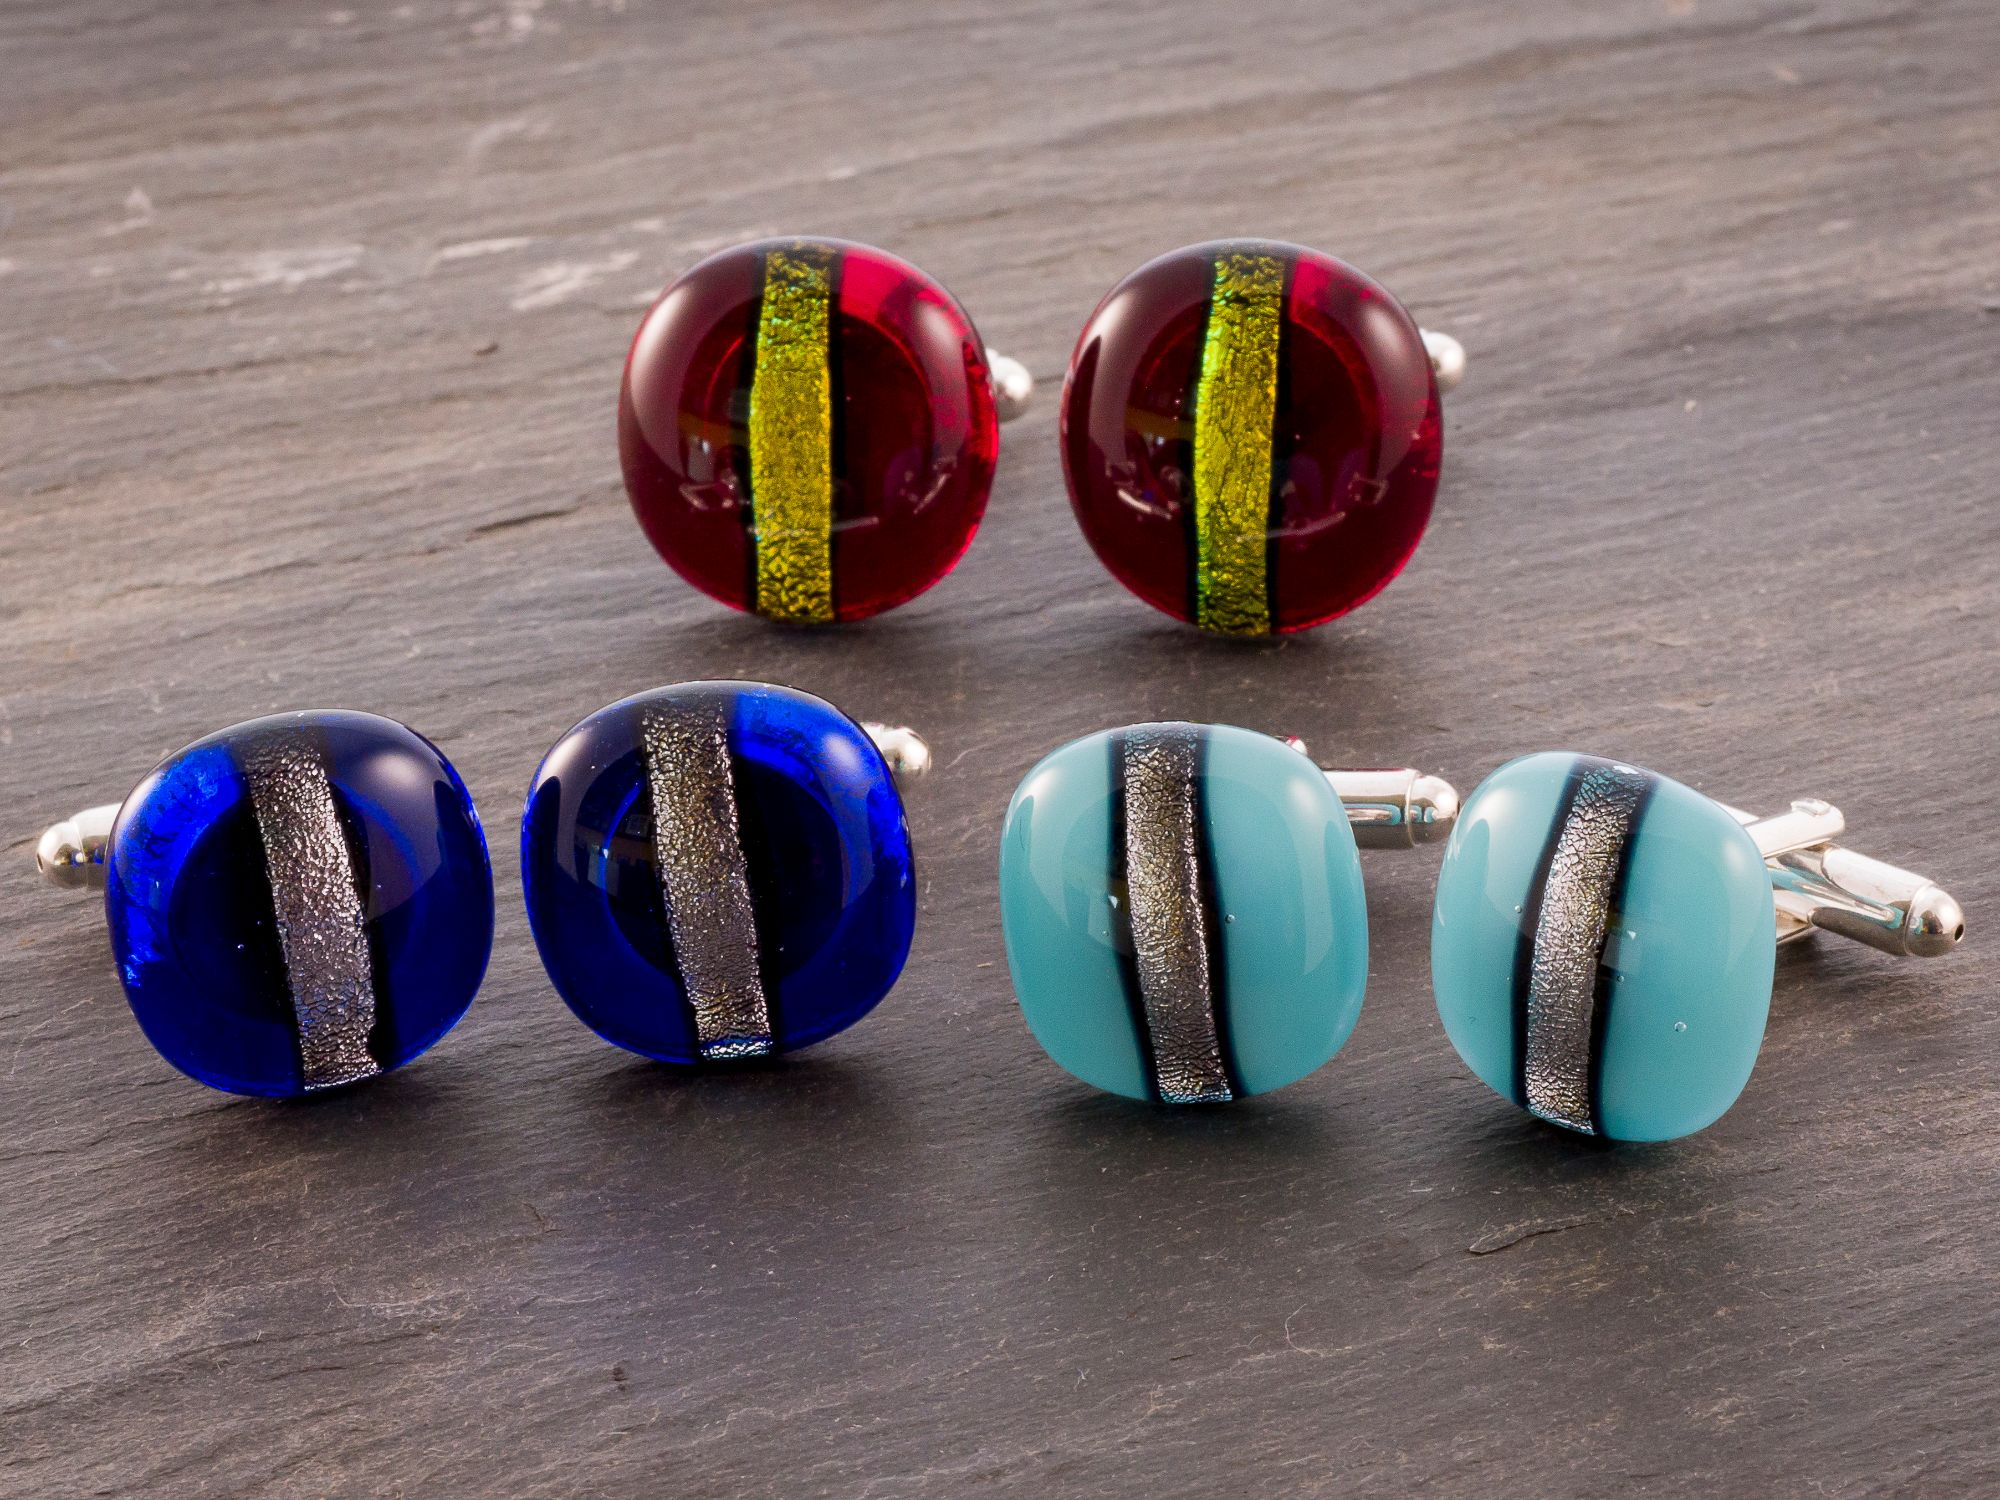 Classic but distinguished cufflinks for the man who likes to wear something unusual and get noticed